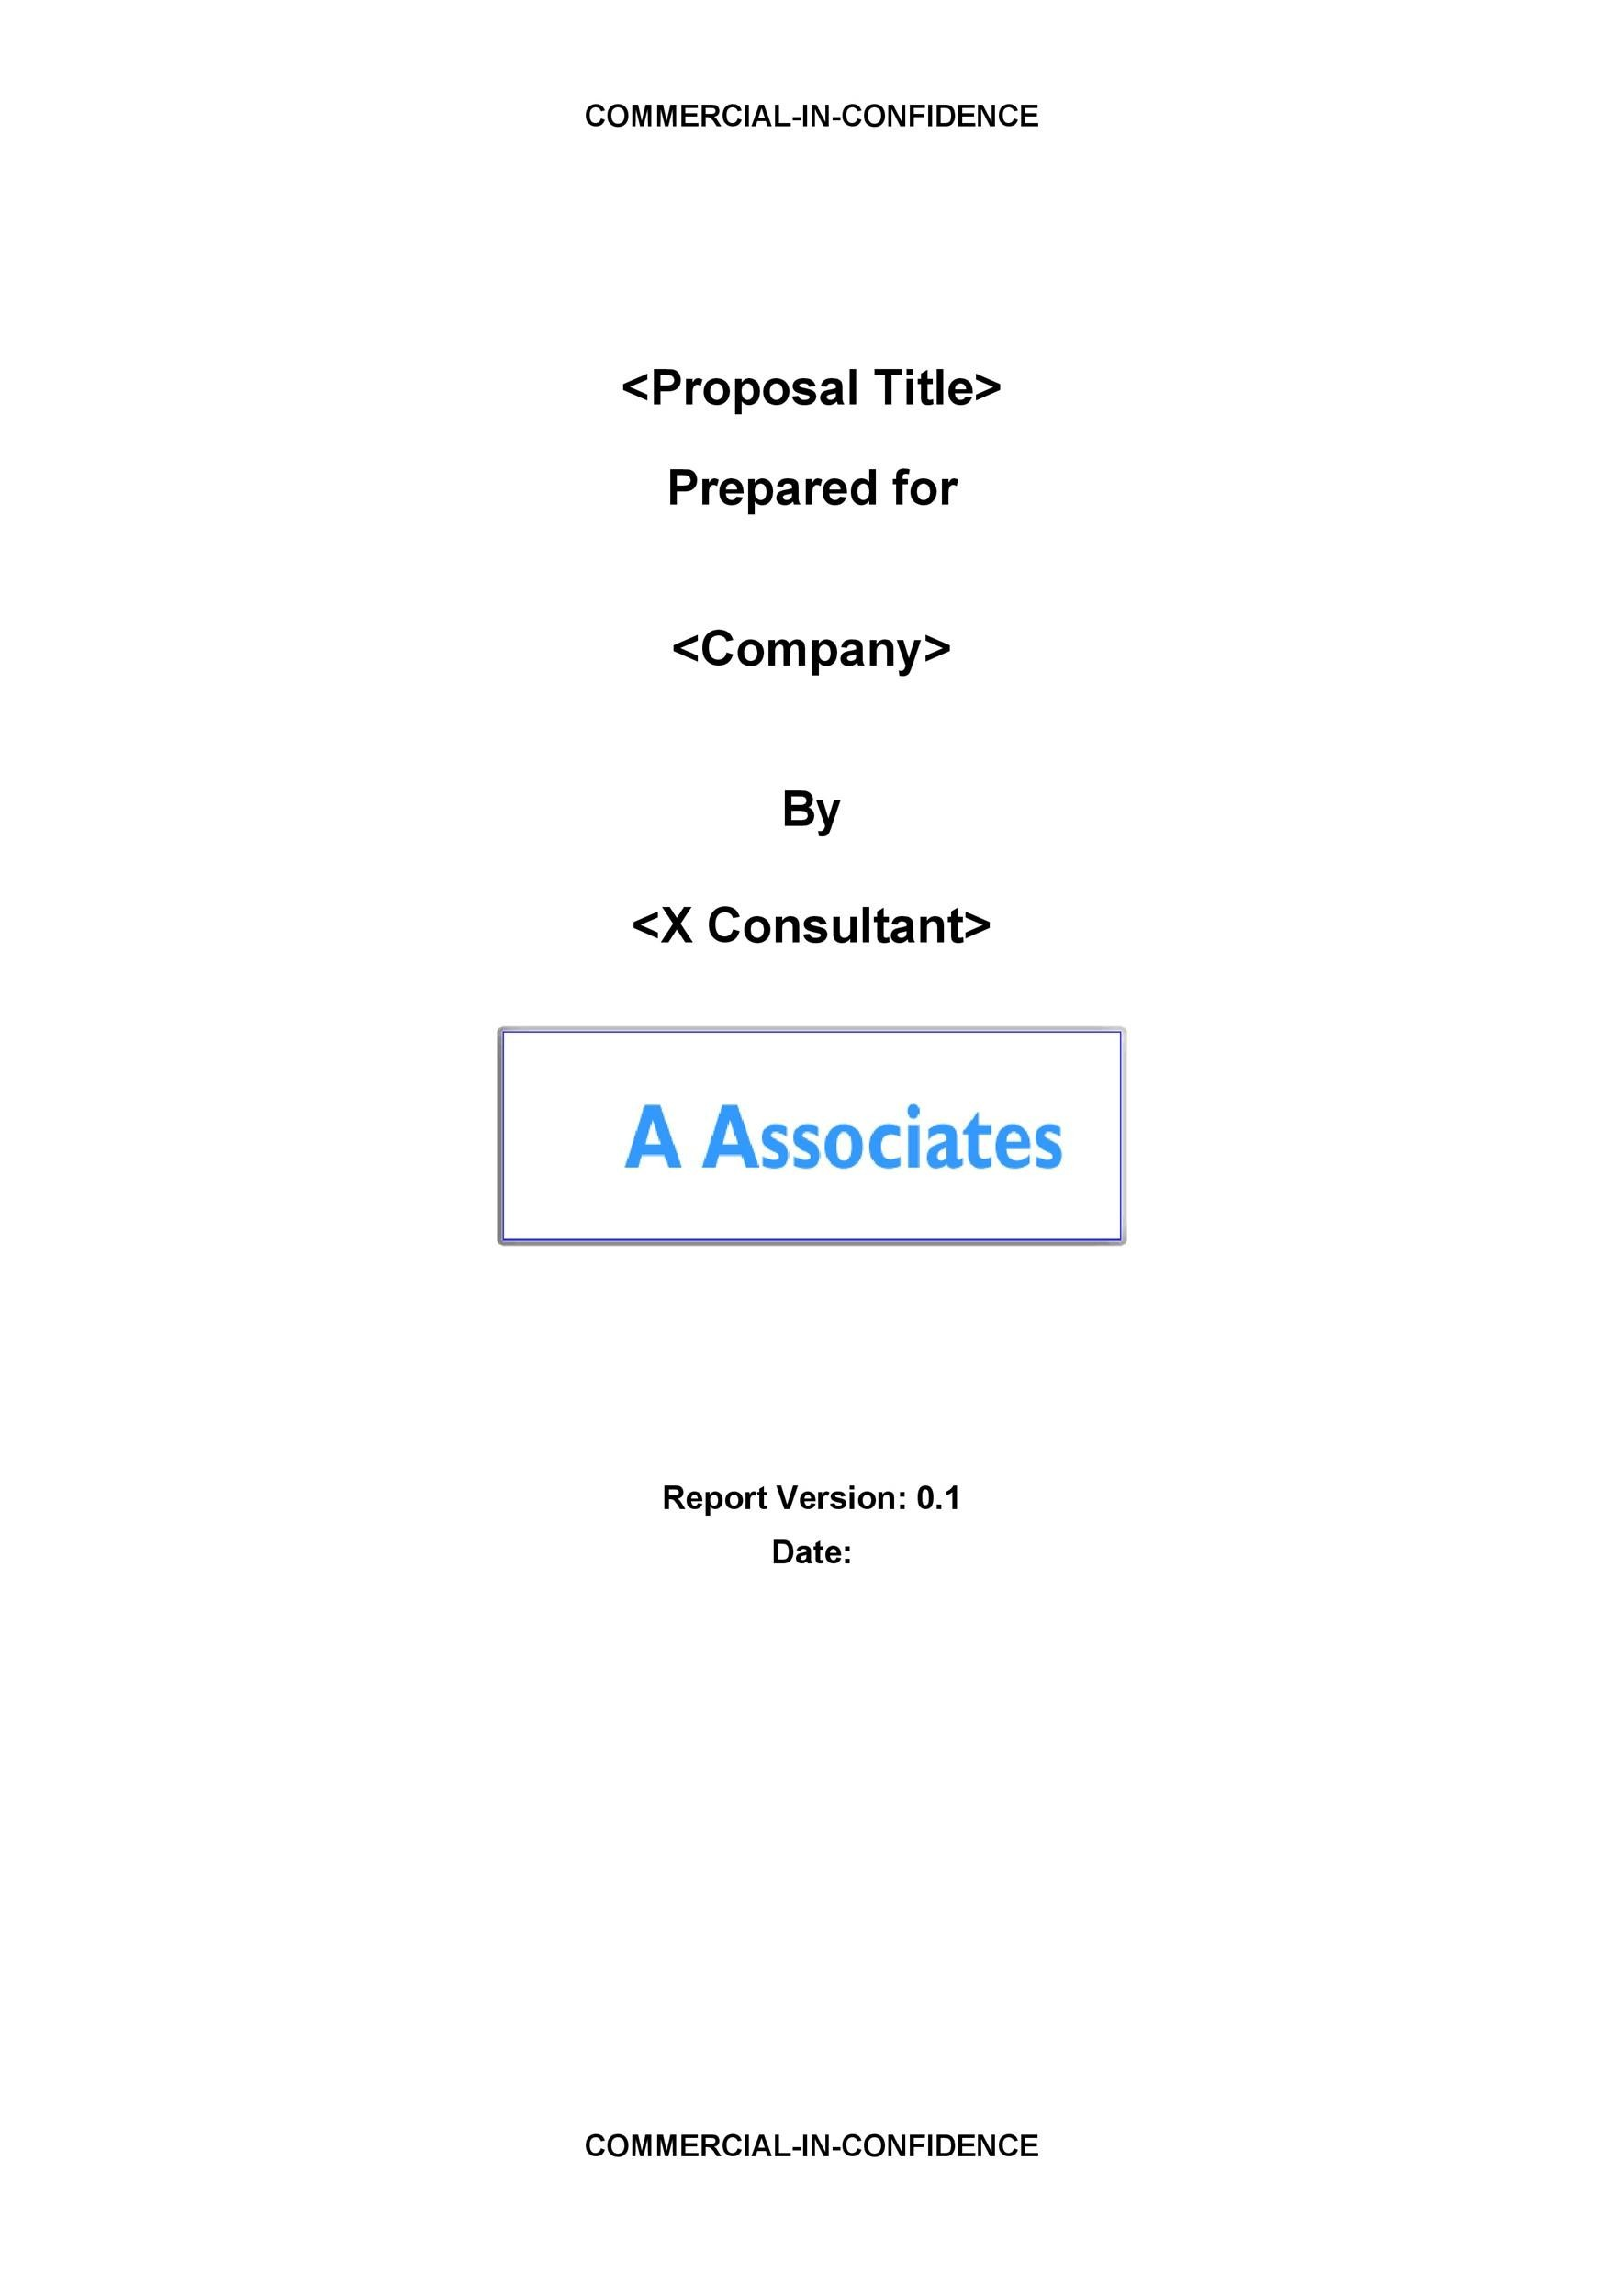 39 BEST Consulting Proposal Templates [FREE] ᐅ Template Lab